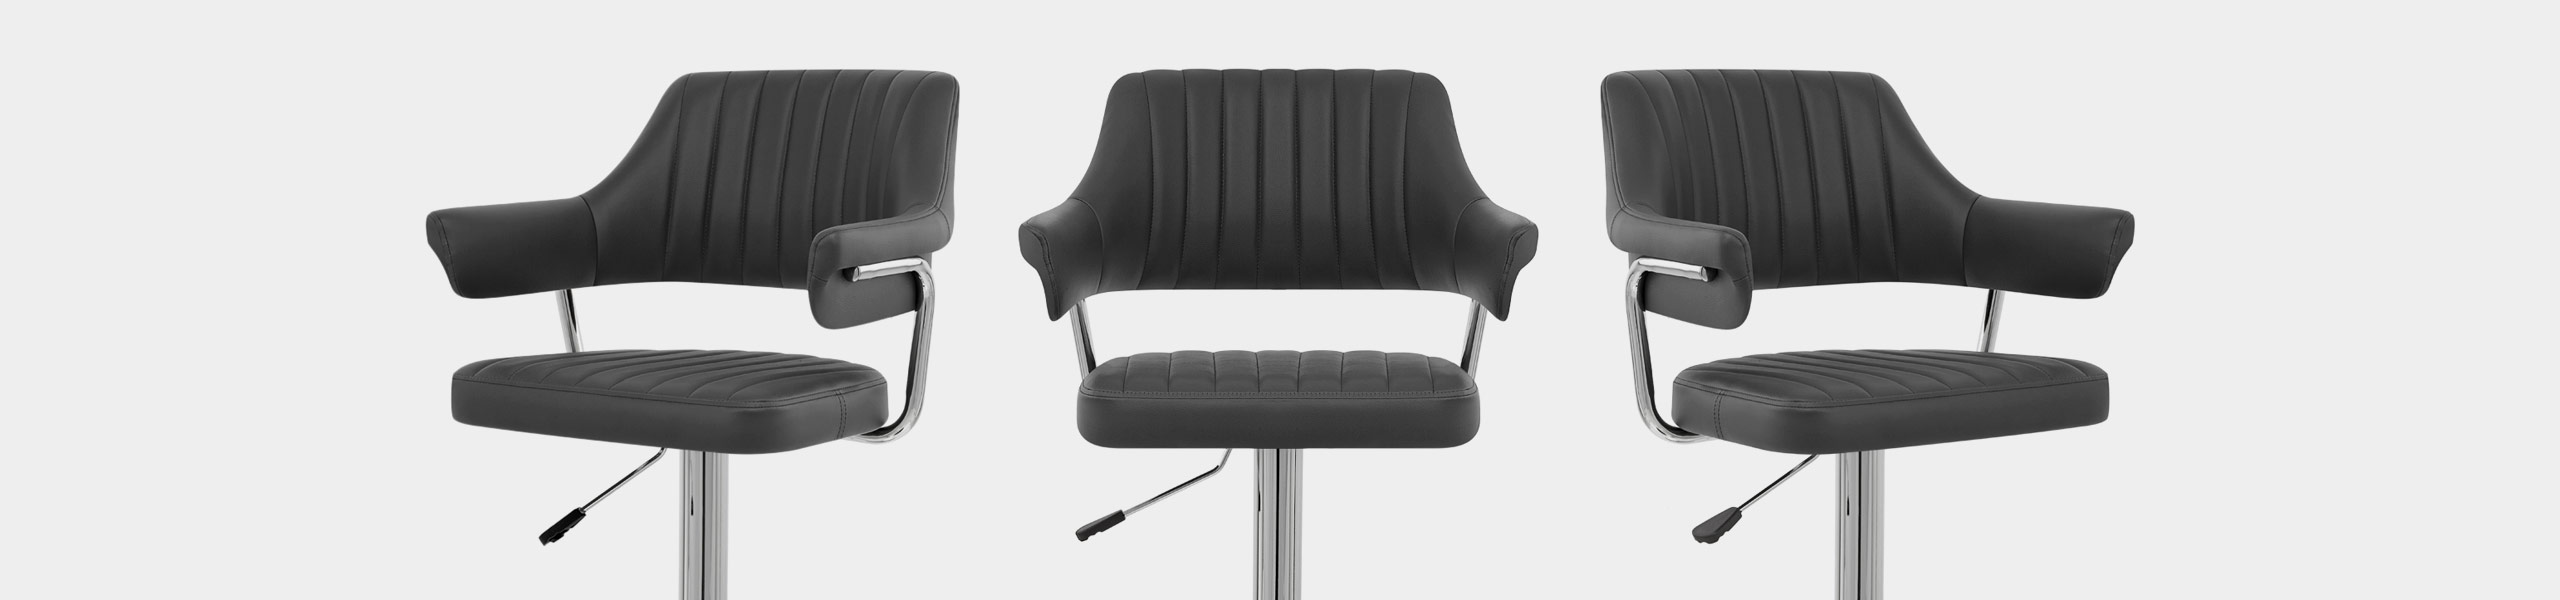 Skyline Bar Chair Black Video Banner